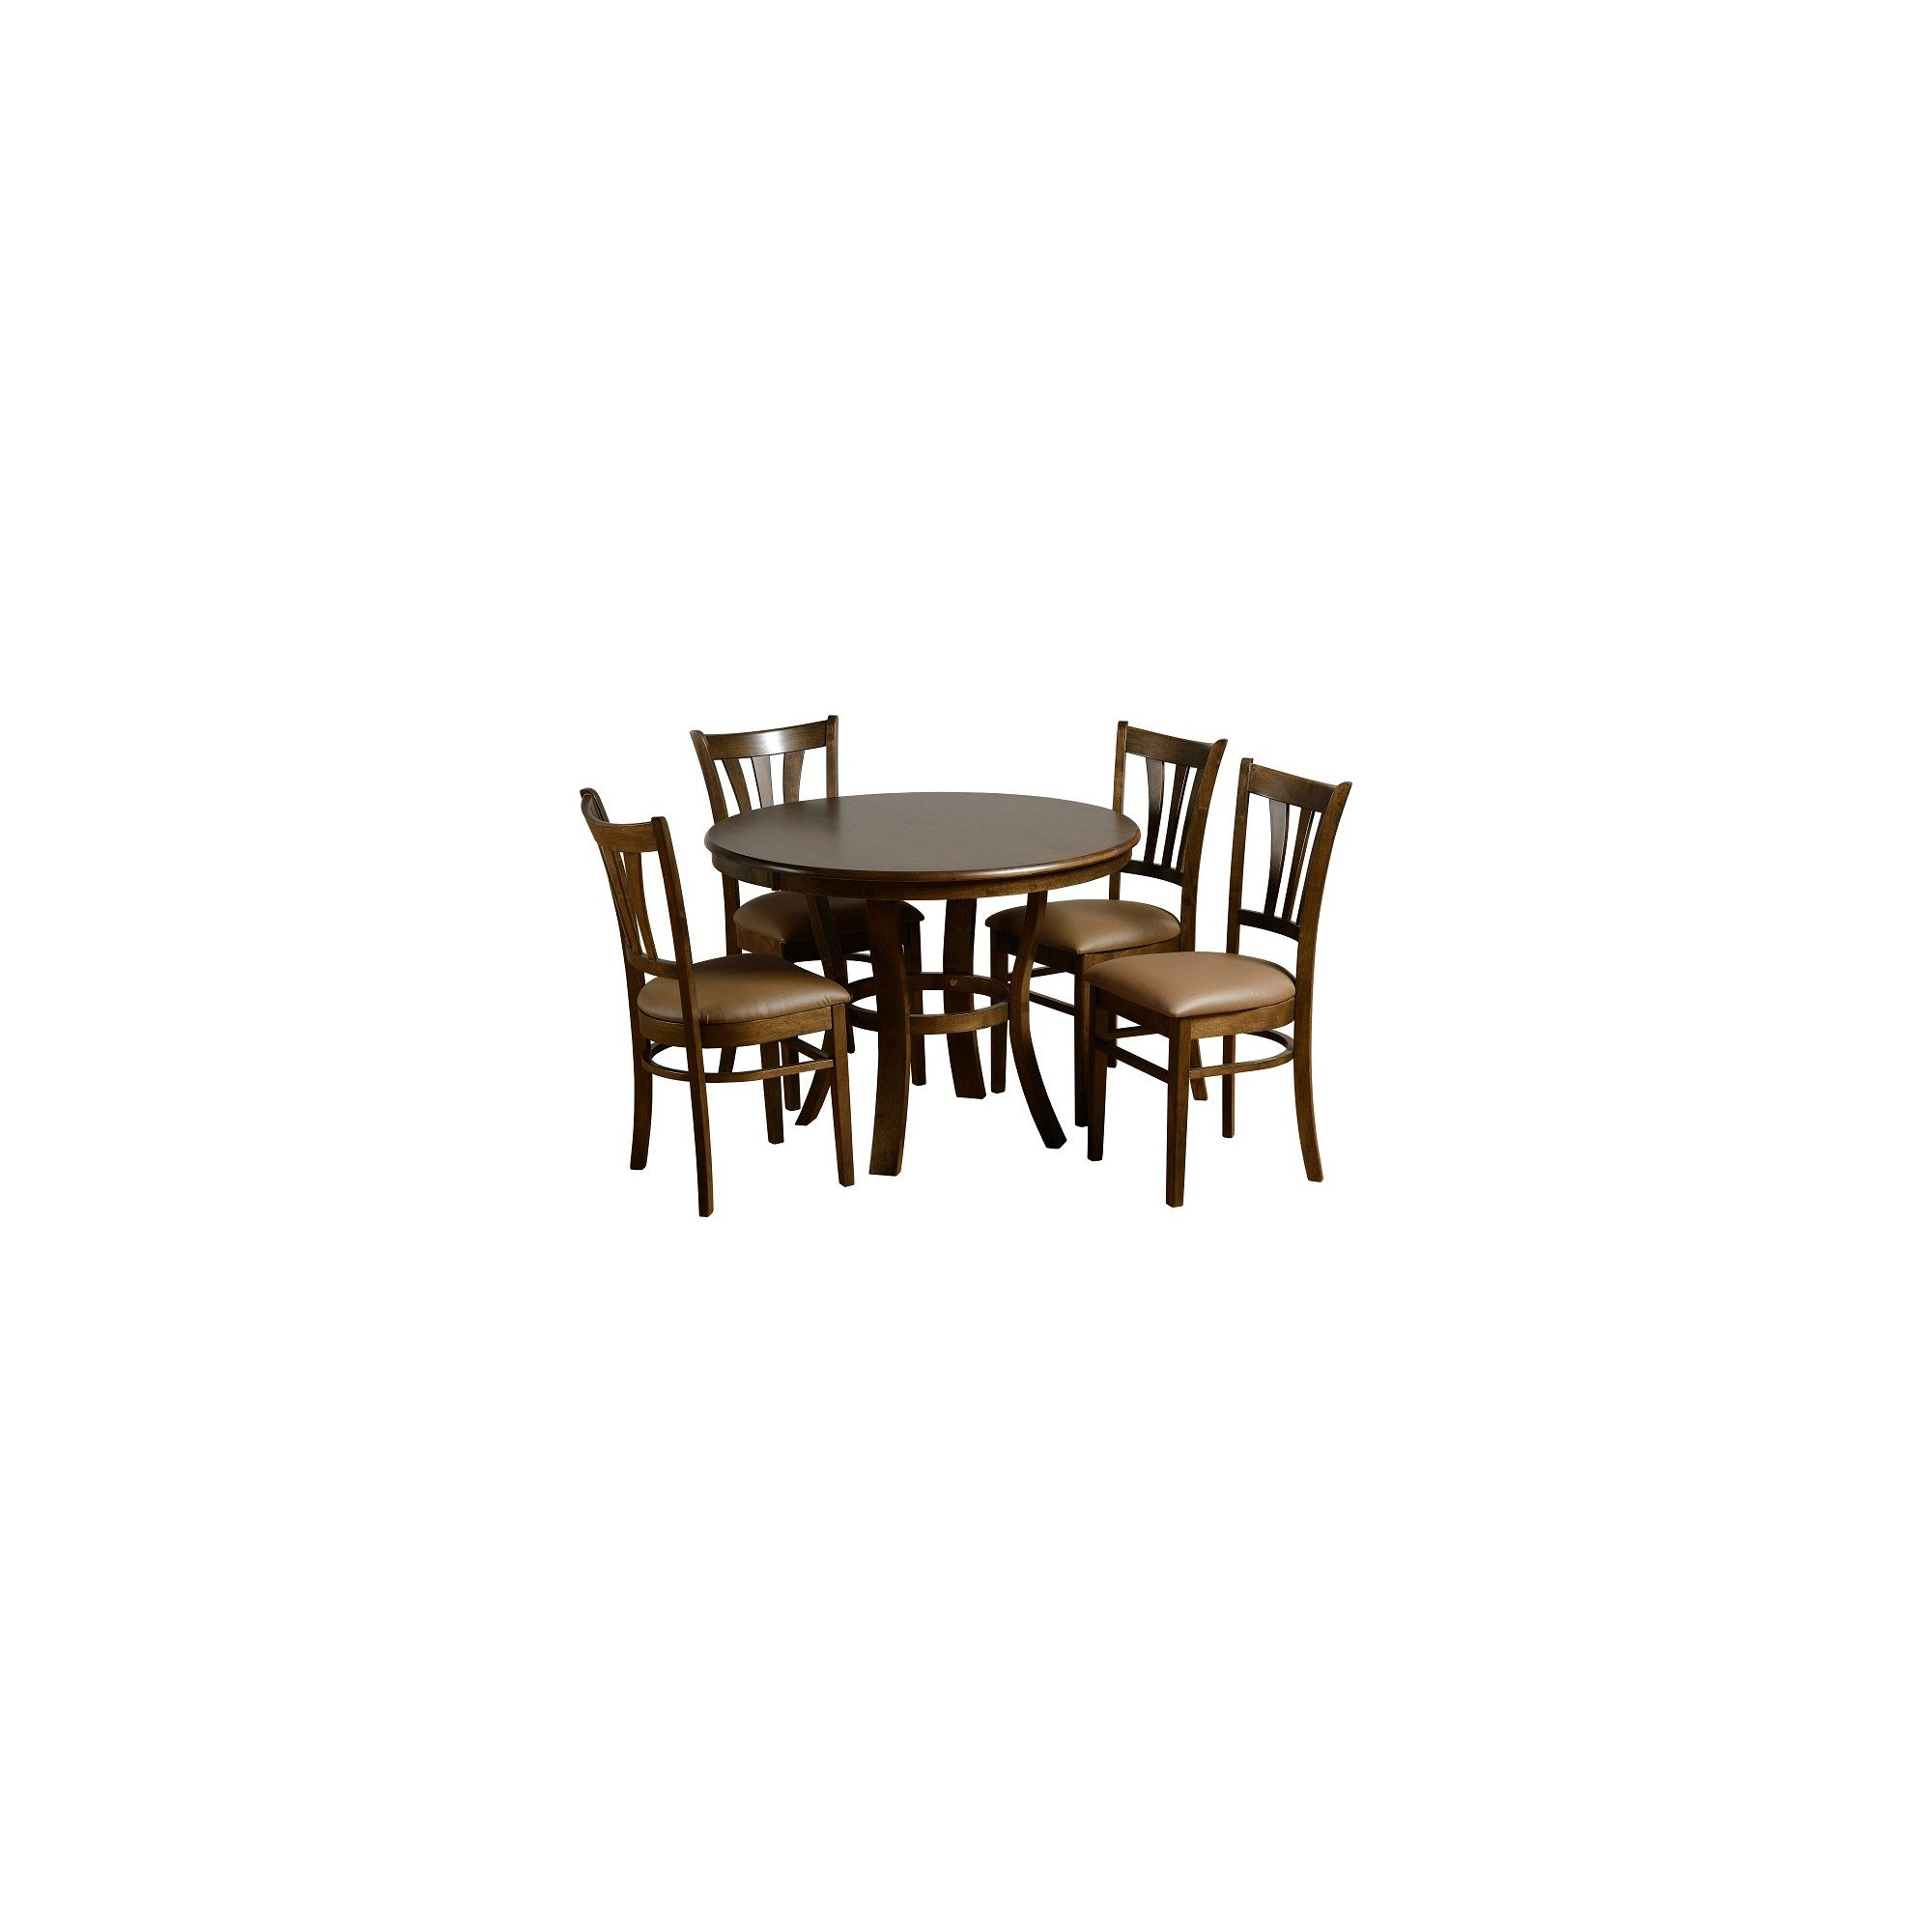 Home Essence Grosvenor Round 5 Piece Dining Set - Walnut Veneer at Tesco Direct